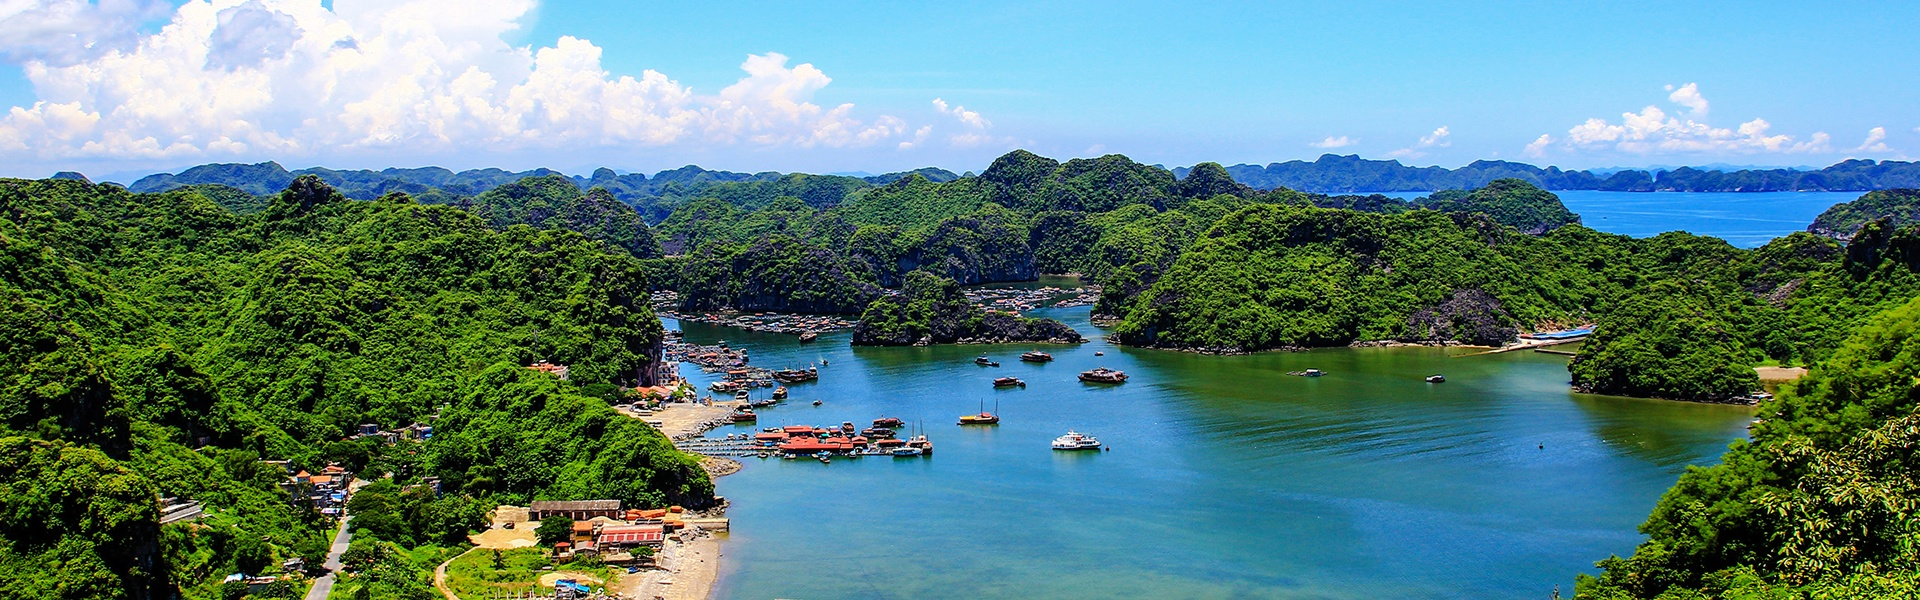 cat ba island in hai phong city - Cat Ba island in Hai Phong City